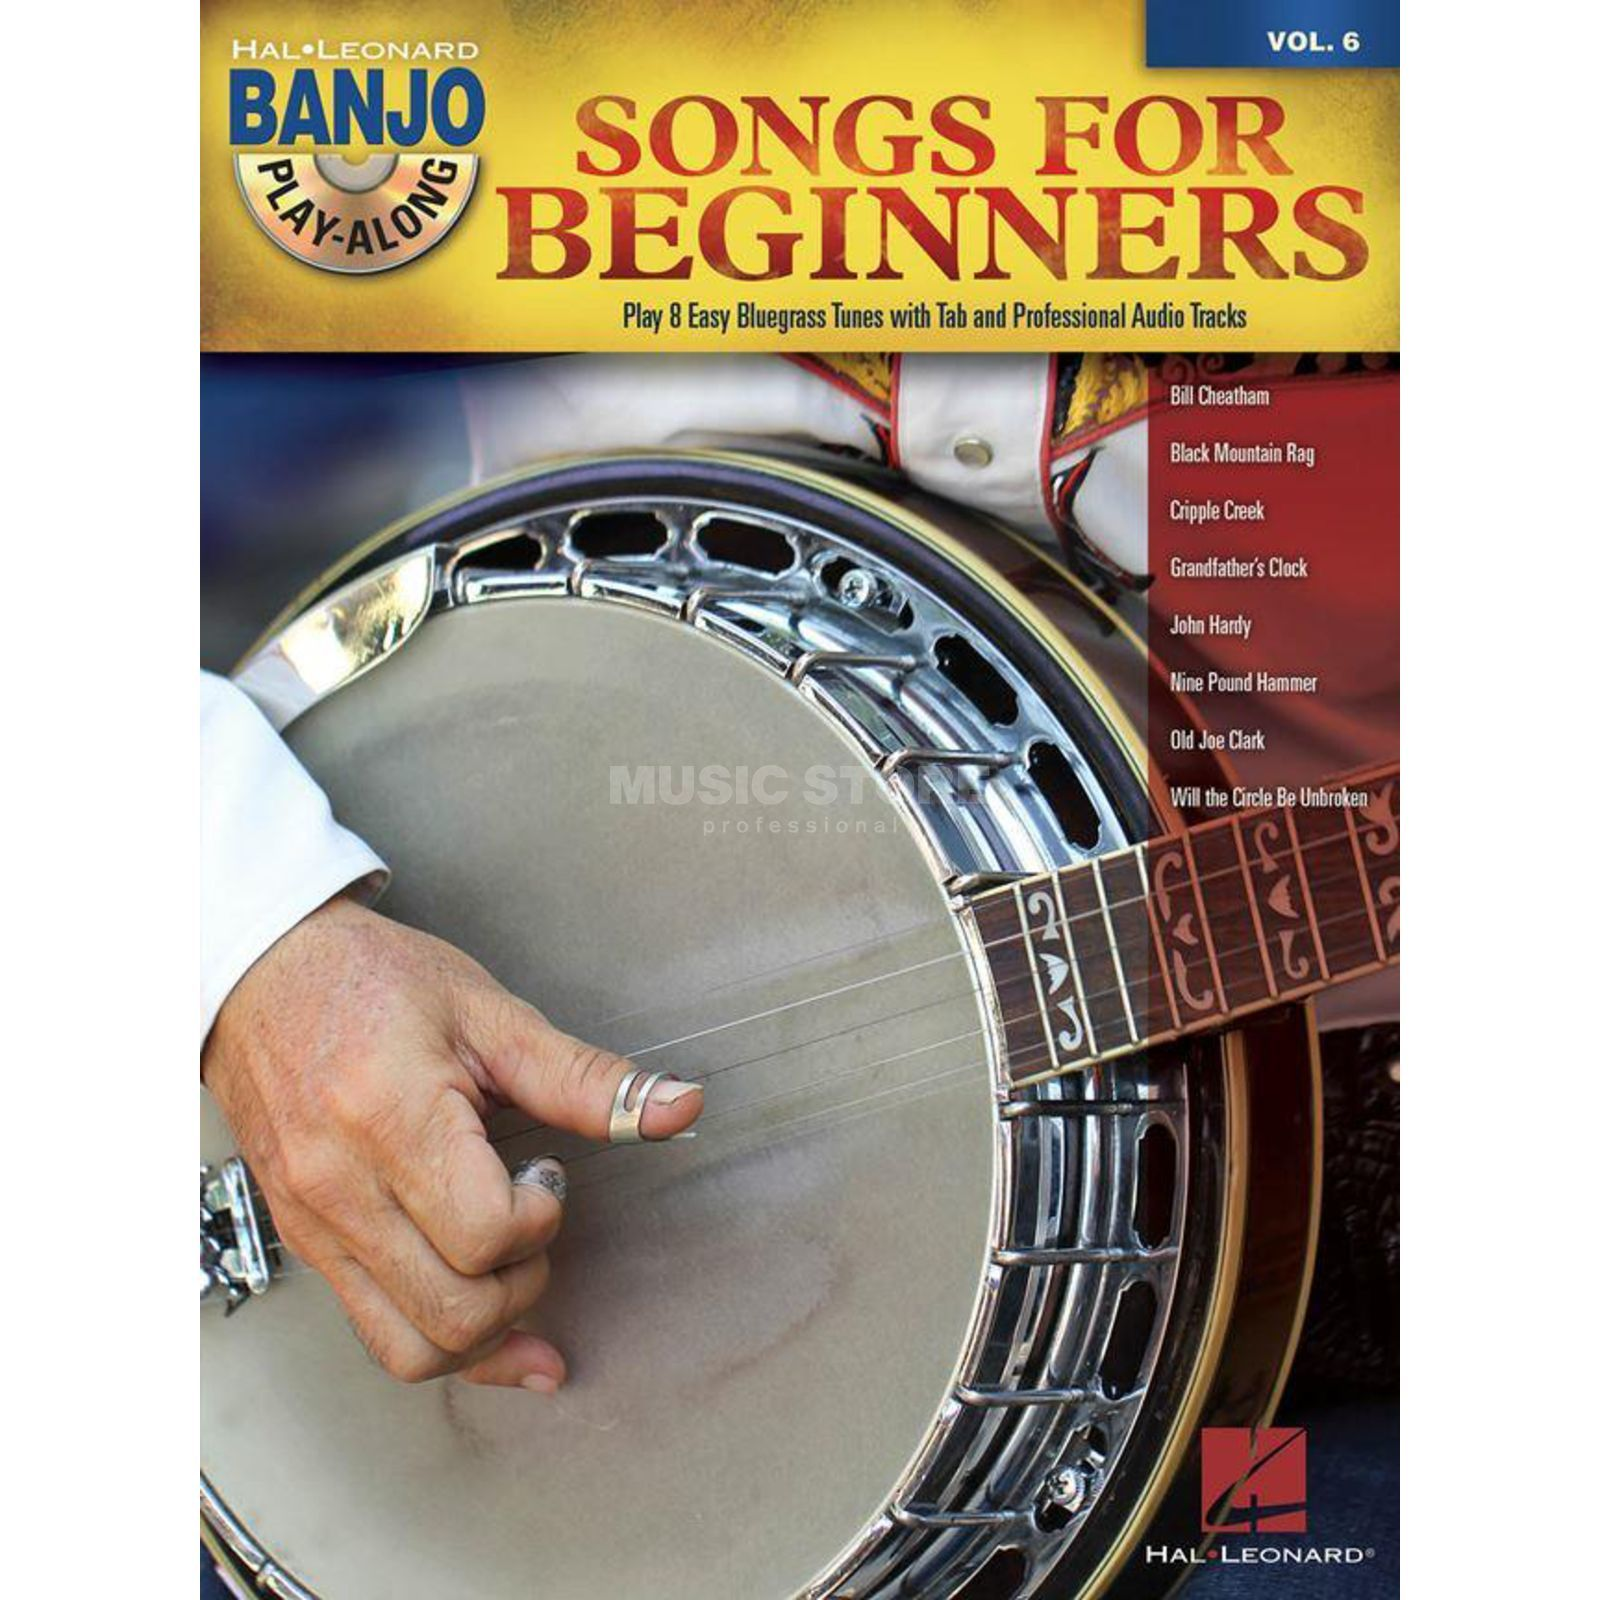 Hal Leonard Banjo Play-Along: Songs for Beginners Vol. 6, Banjo mit CD Produktbild